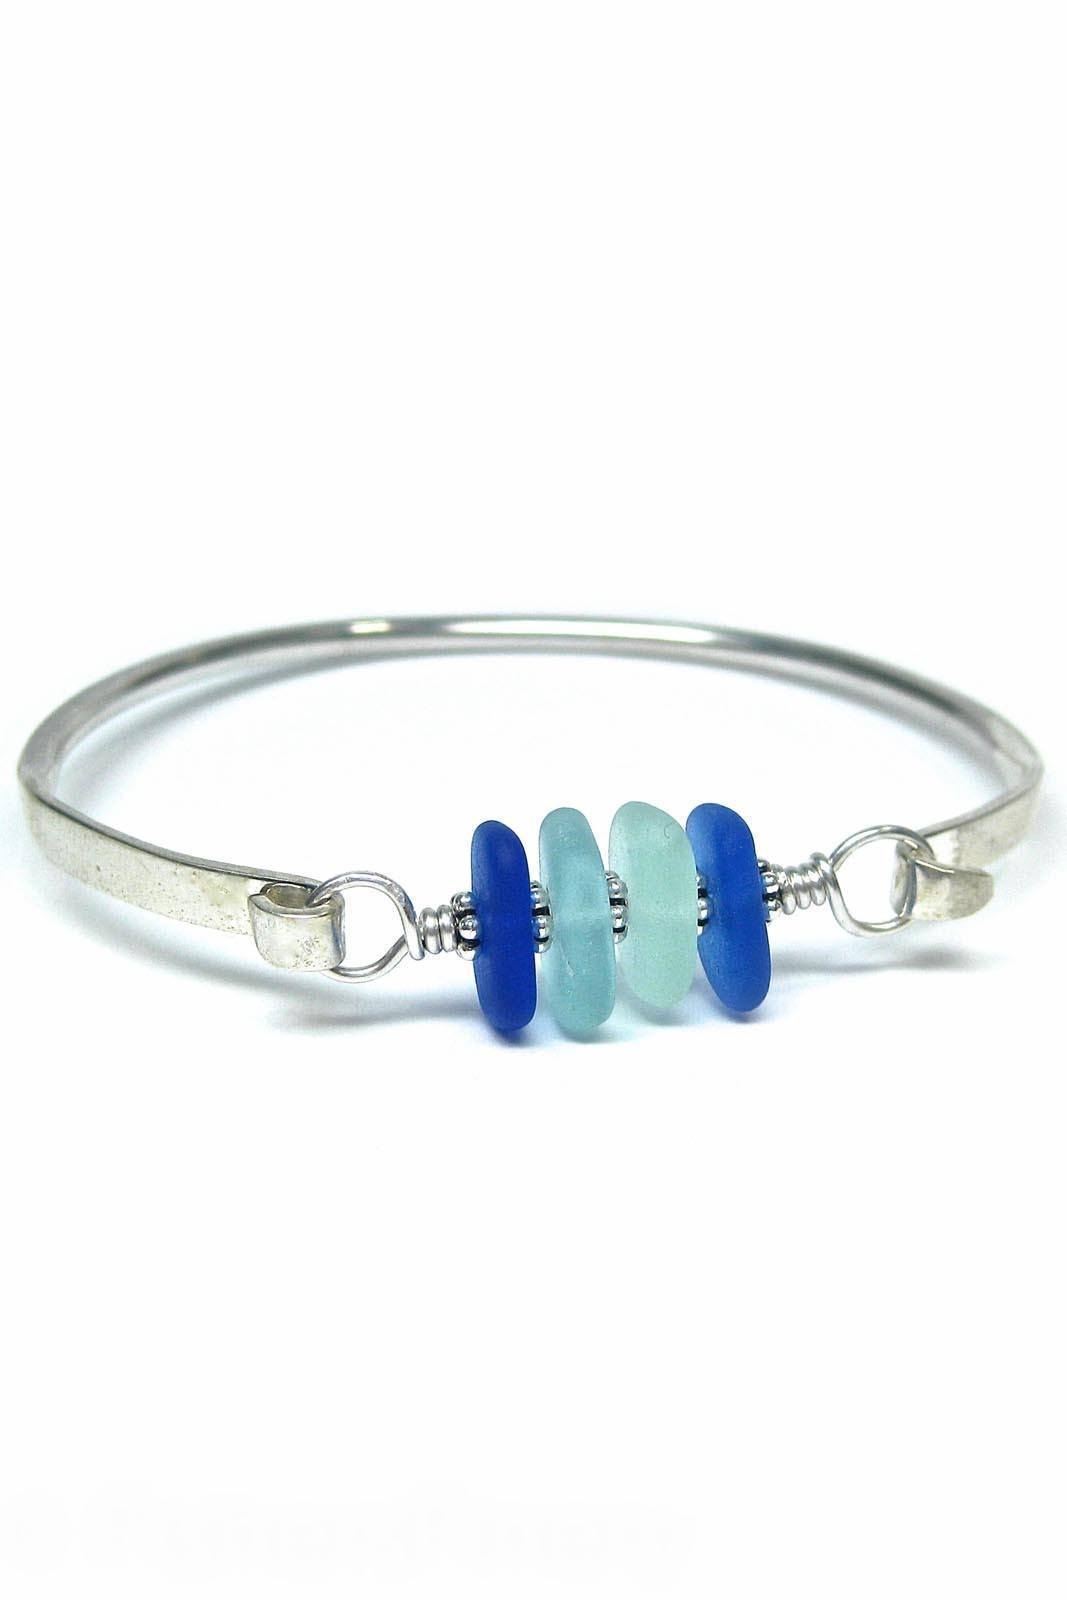 Womens>Accessories>Jewelry - 4 Stone Bangle Bracelet